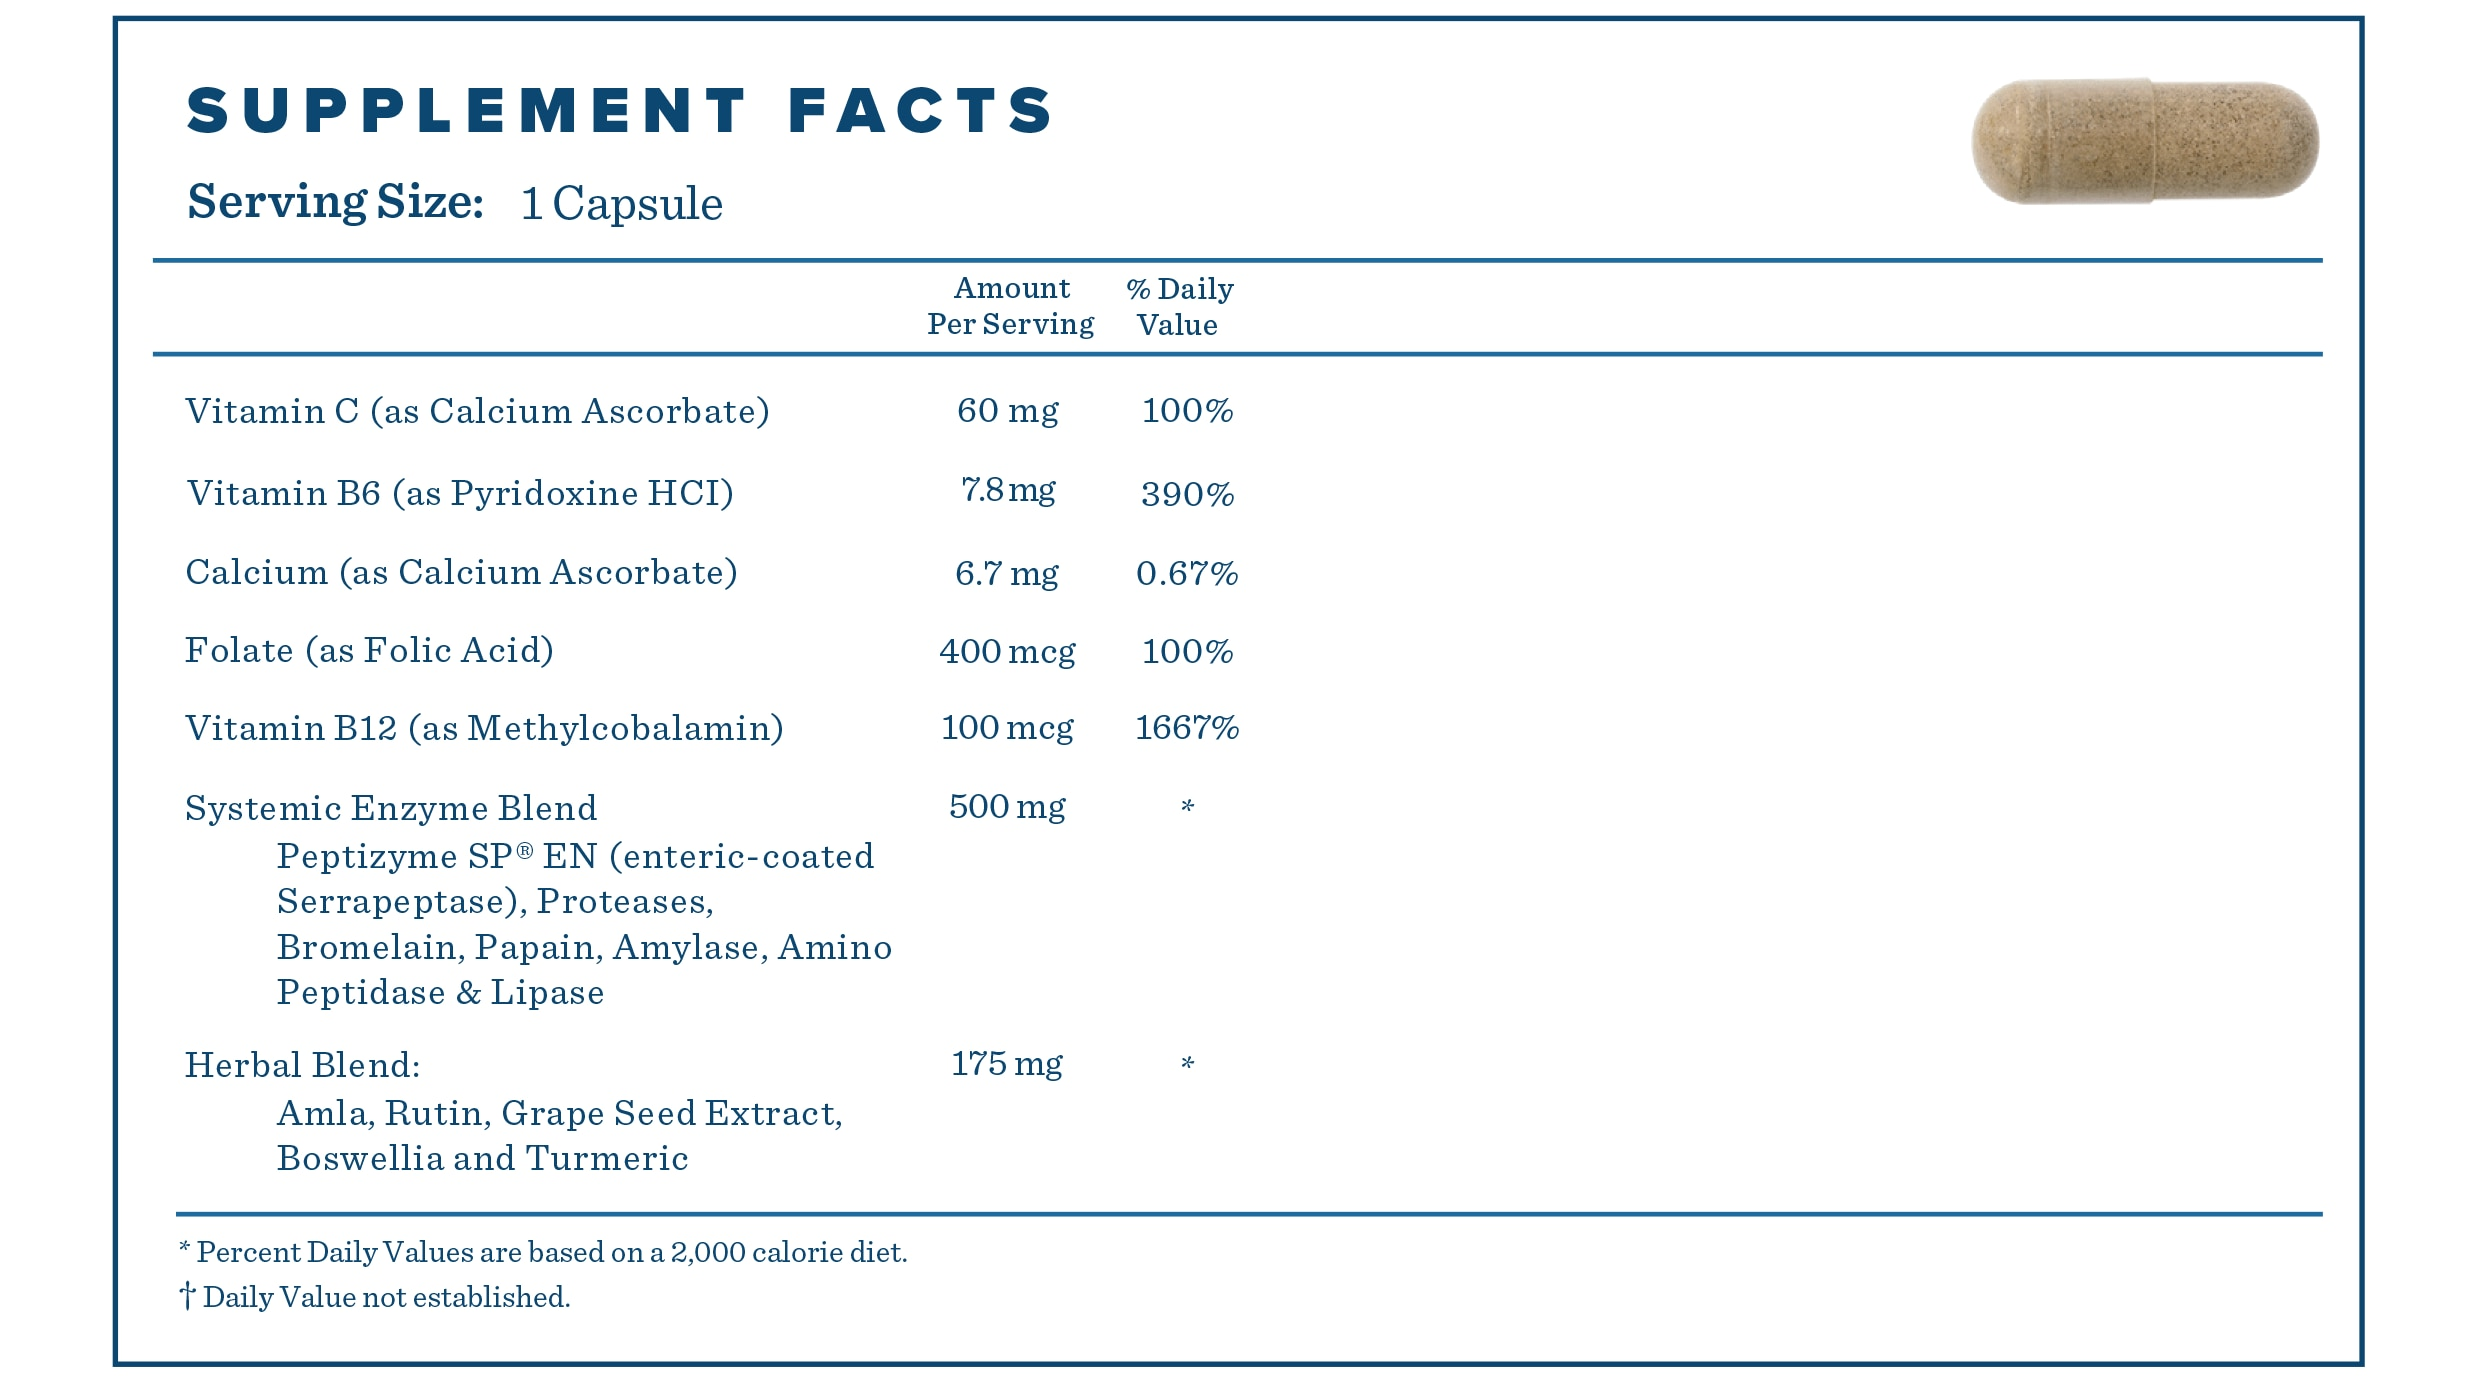 Supplement Facts for Metabolism Support